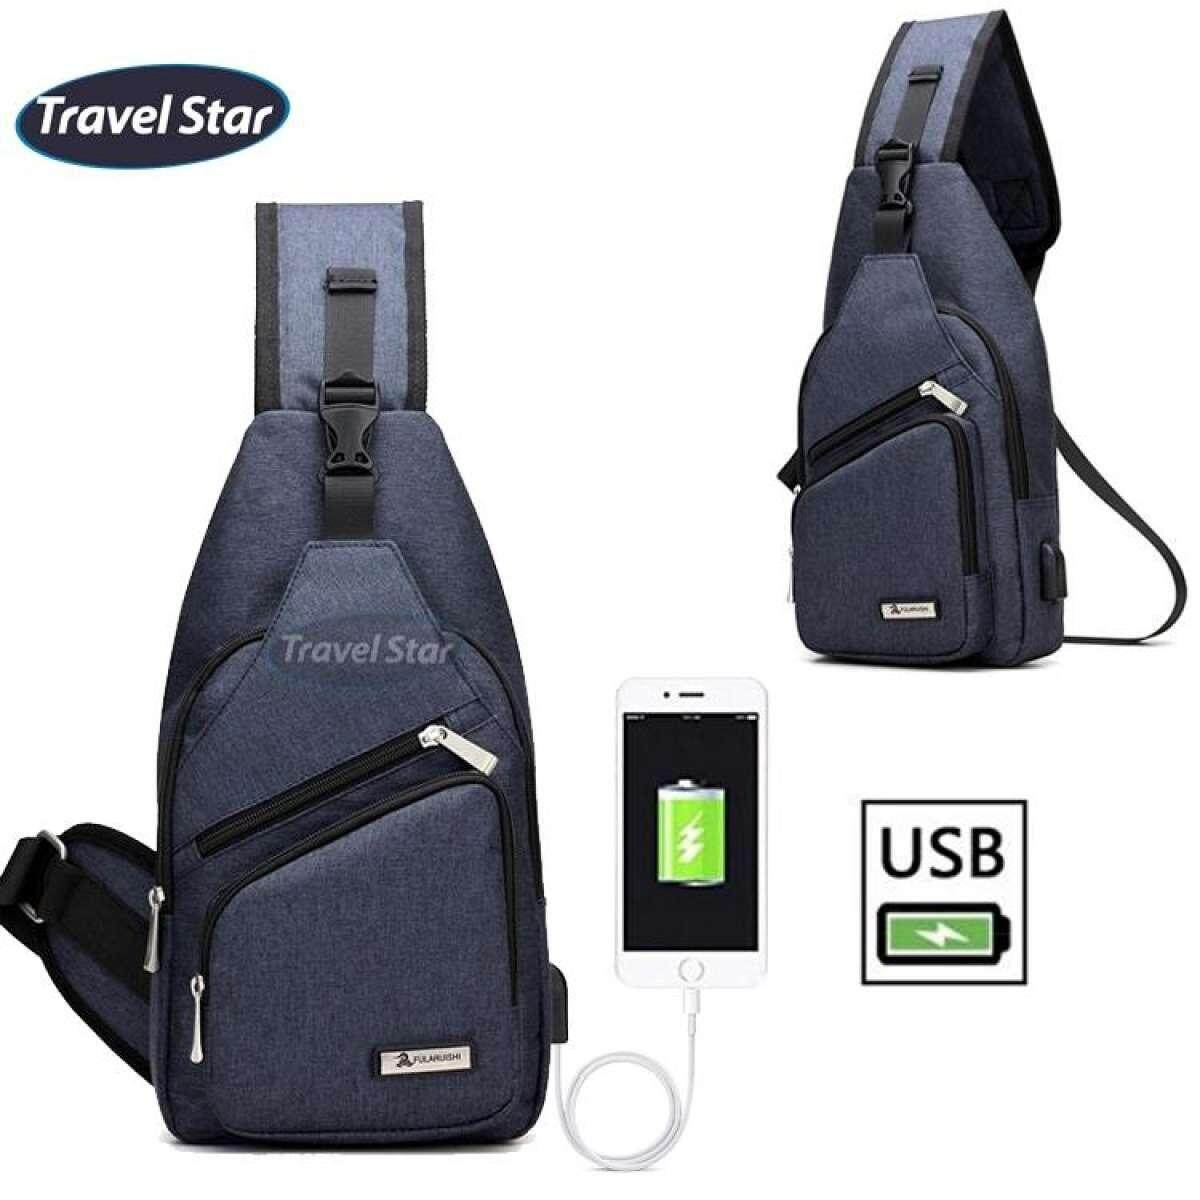 Travel Star 1317 Korean Style Premium Shoulder Bag With External Charging USB Port